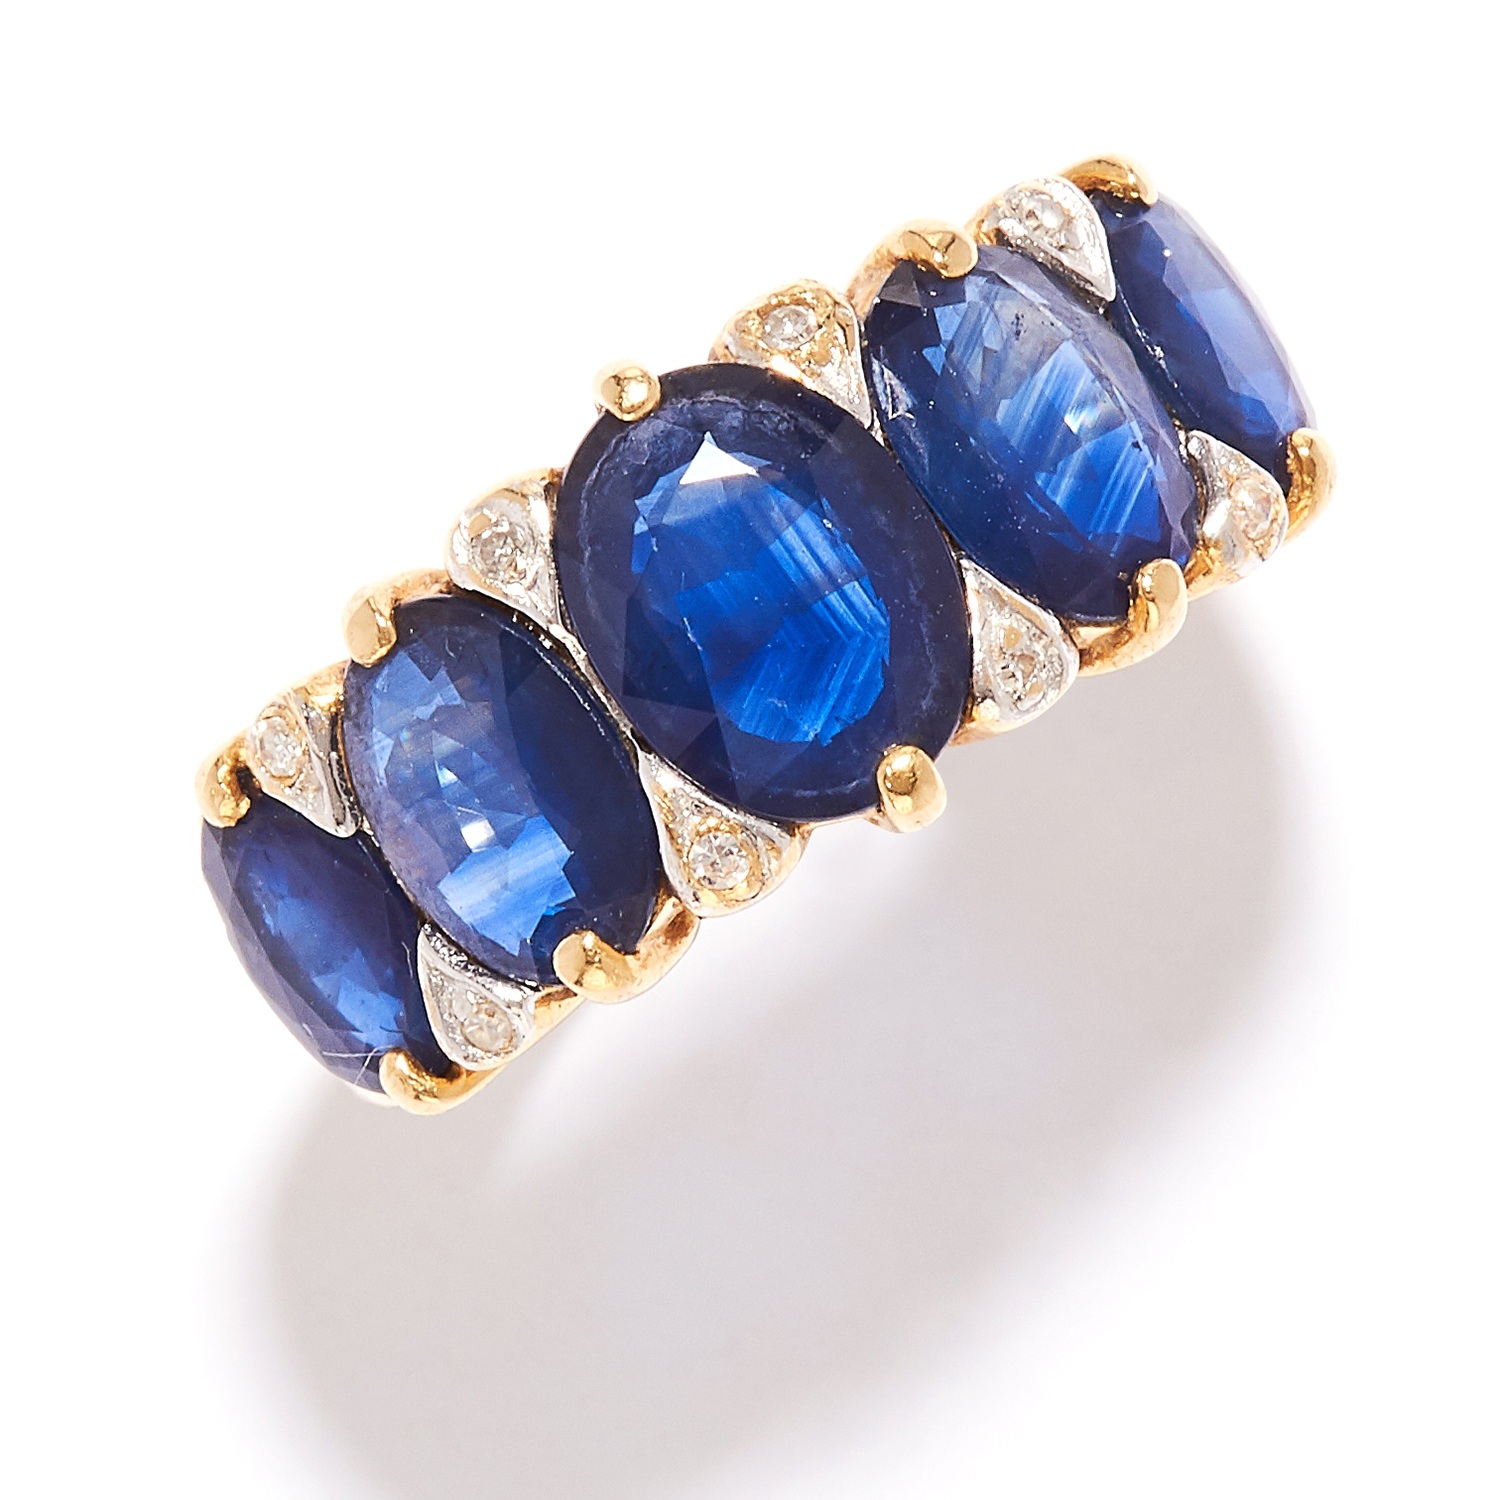 SAPPHIRE AND DIAMOND RING in high carat yellow gold, set with a row of five graduated oval cut